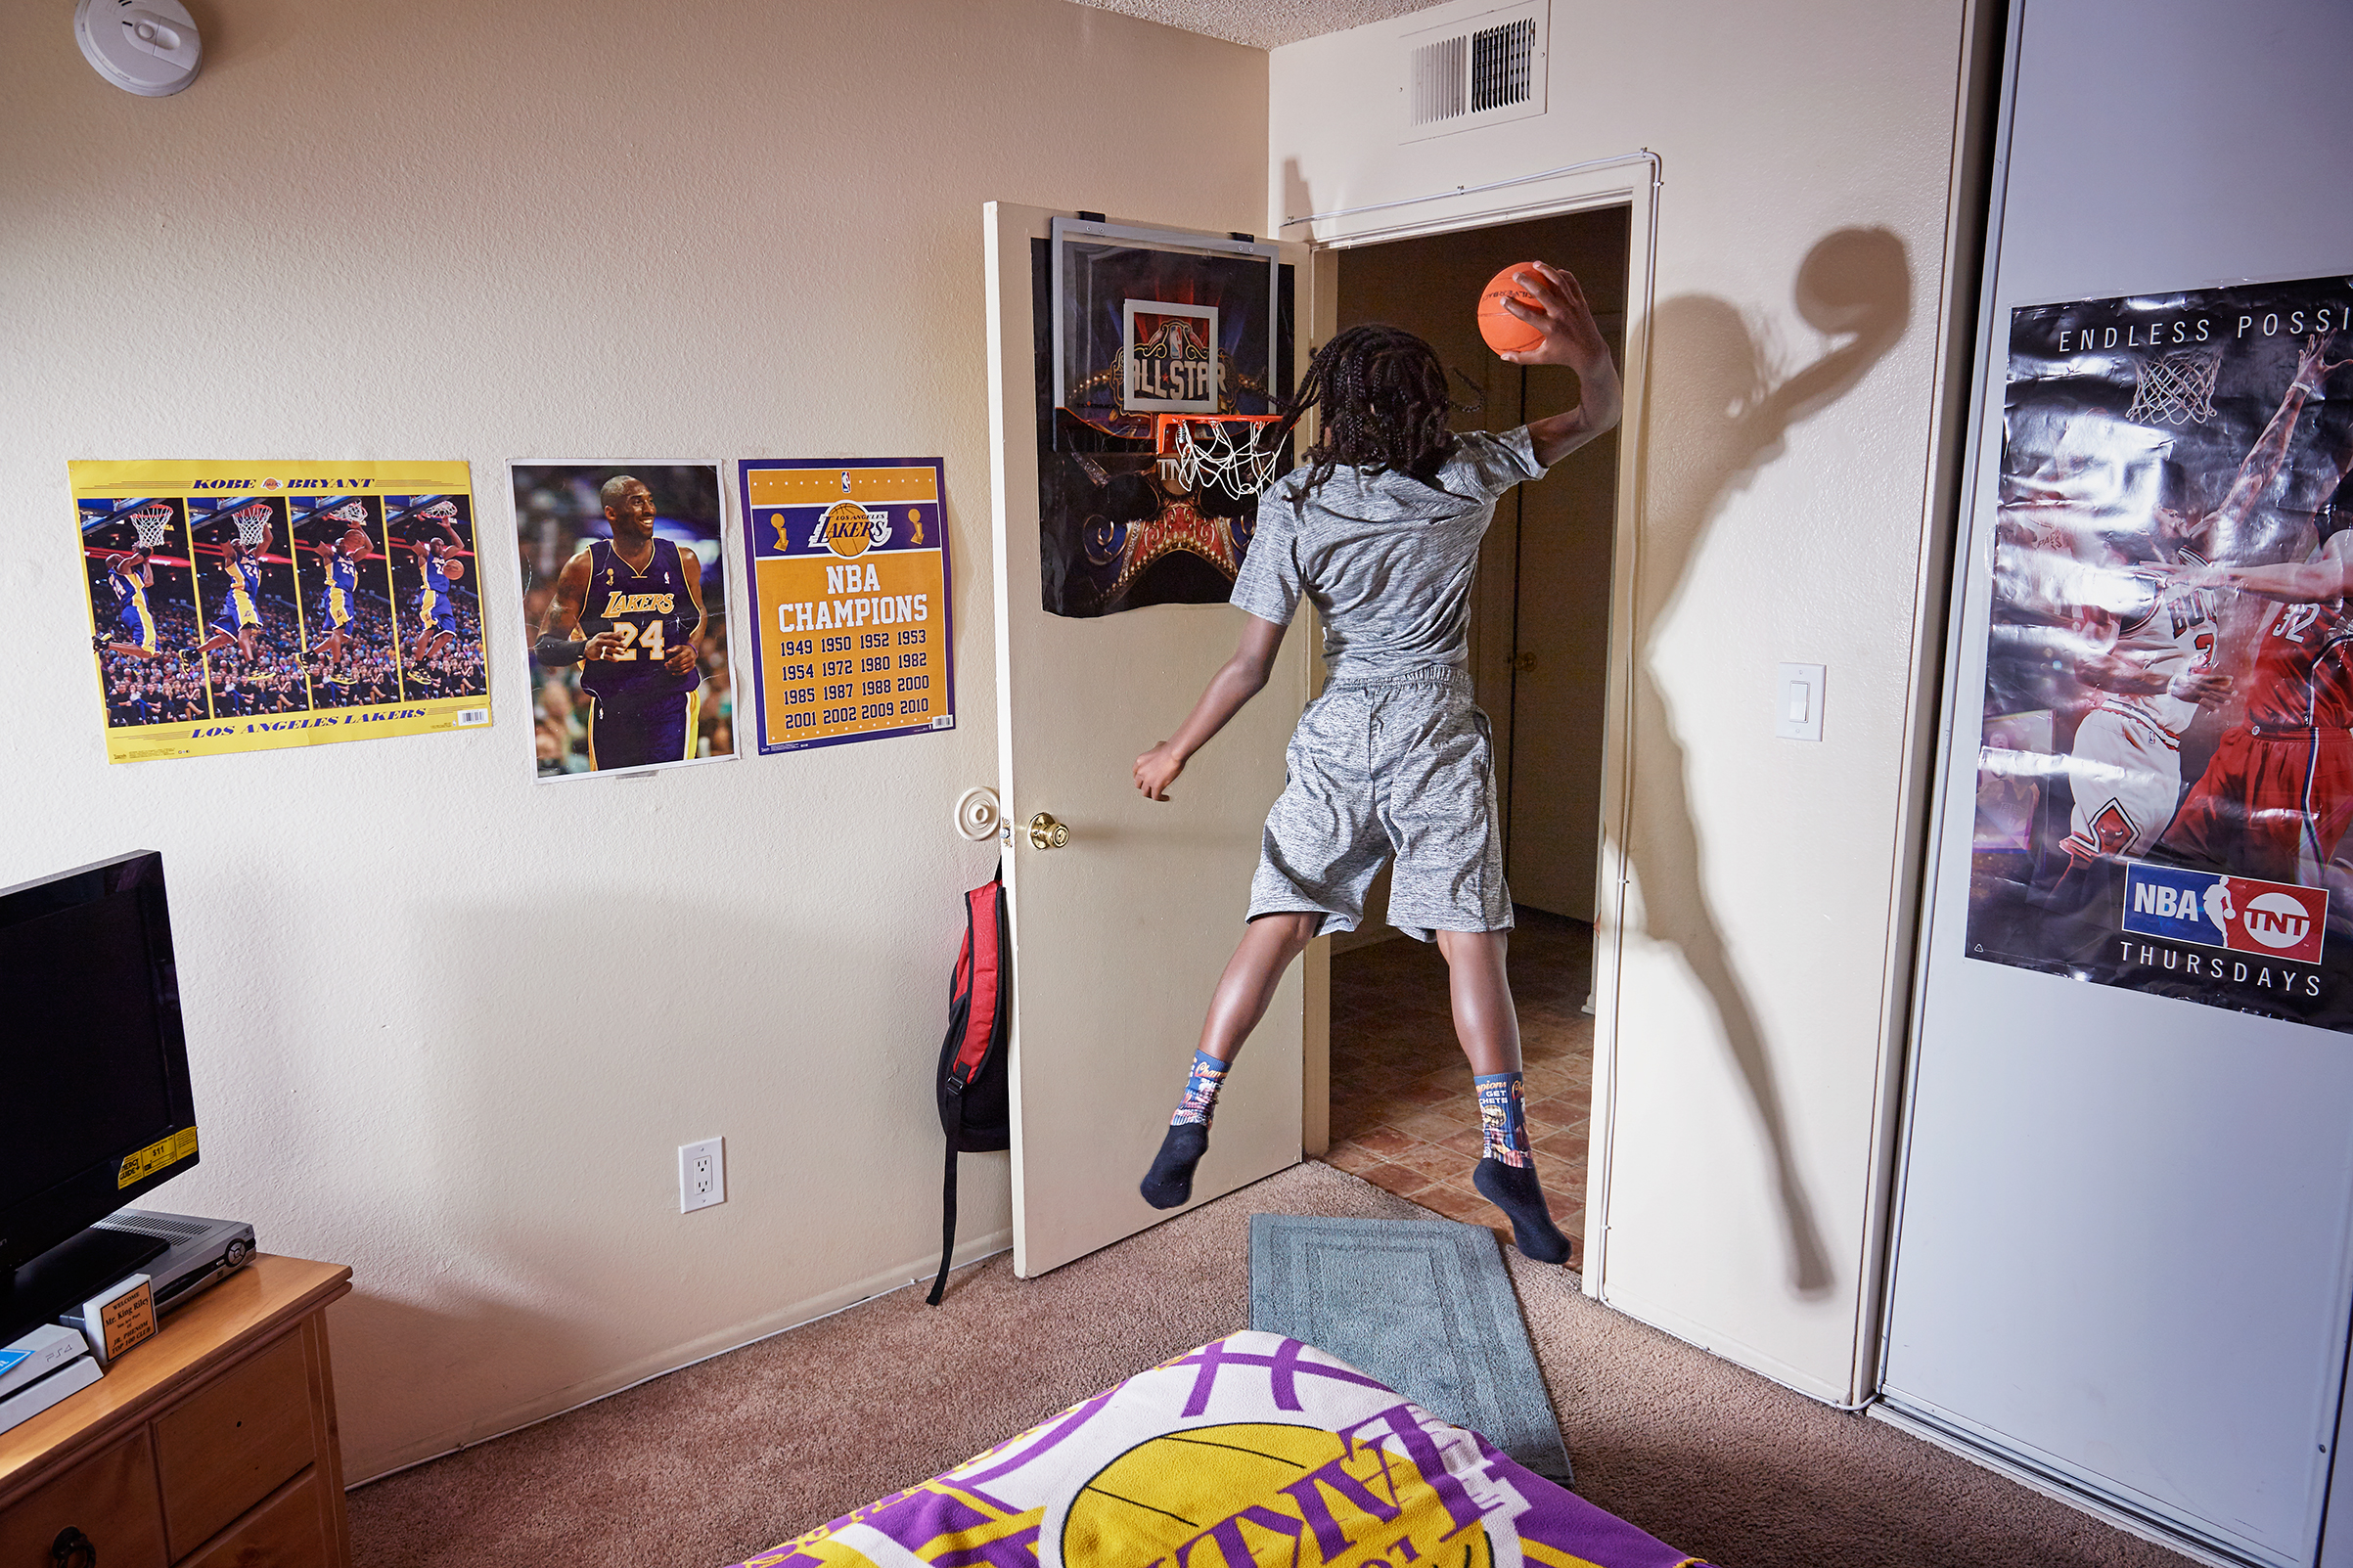 King-Riley Owens, 9, who is ranked as a five-star prospect by the National Youth Basketball Report, lives in L.A. but has already played in tournaments in Utah, Texas and Nevada. His parents have used GoFundMe to help pay for the travel. If the NBA doesn't work out, King-Riley wants to be a veterinarian. Here King-Rily is photographed at home on Aug. 2, 2017.